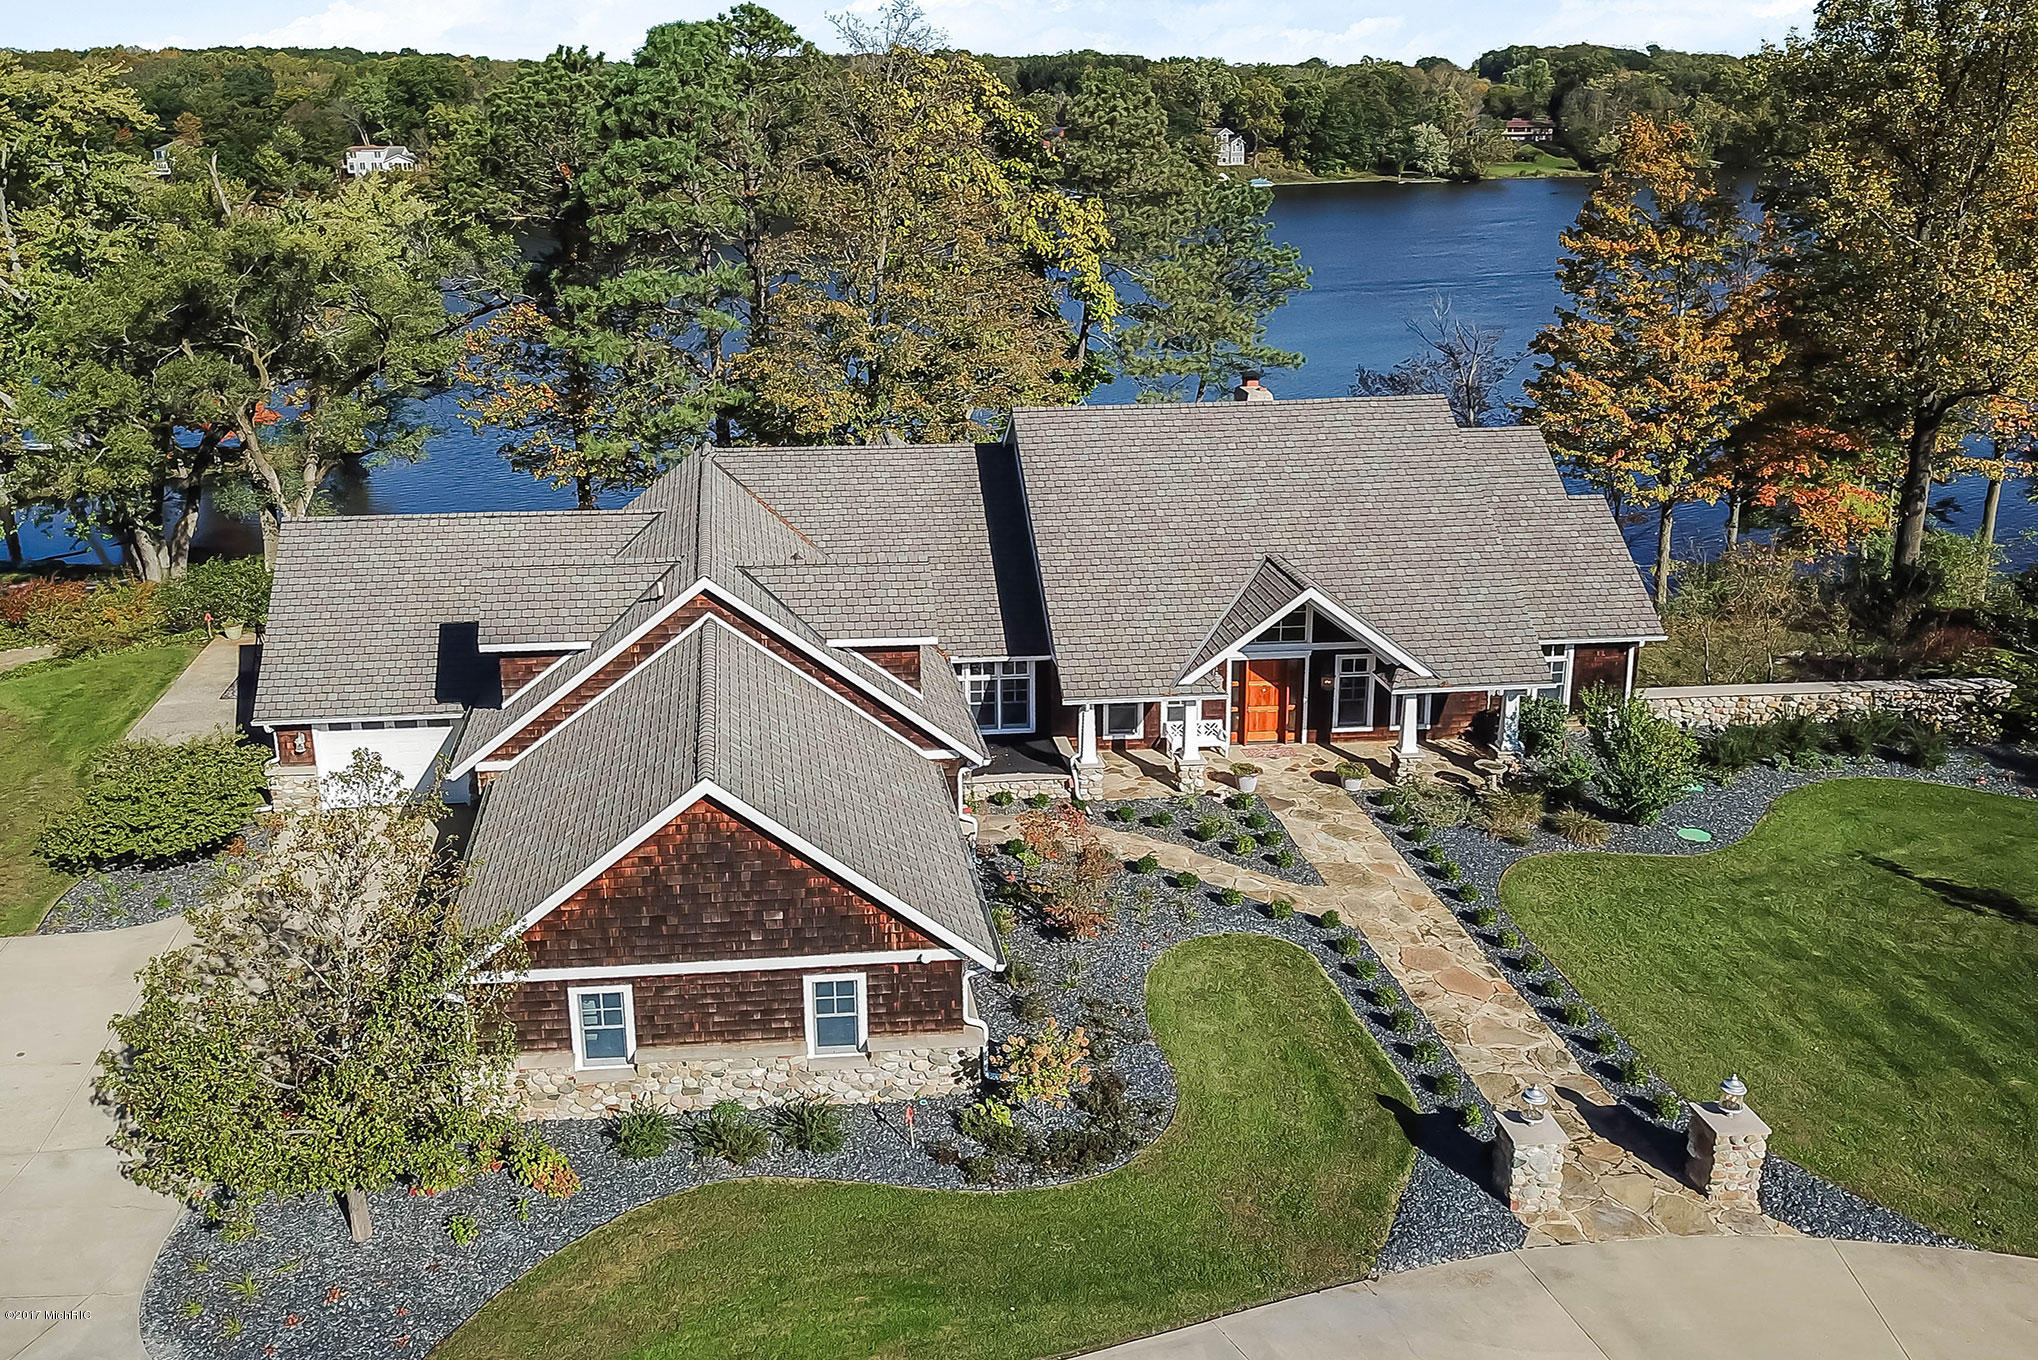 4677 LAKE PINES LANE, BERRIEN SPRINGS, MI 49103